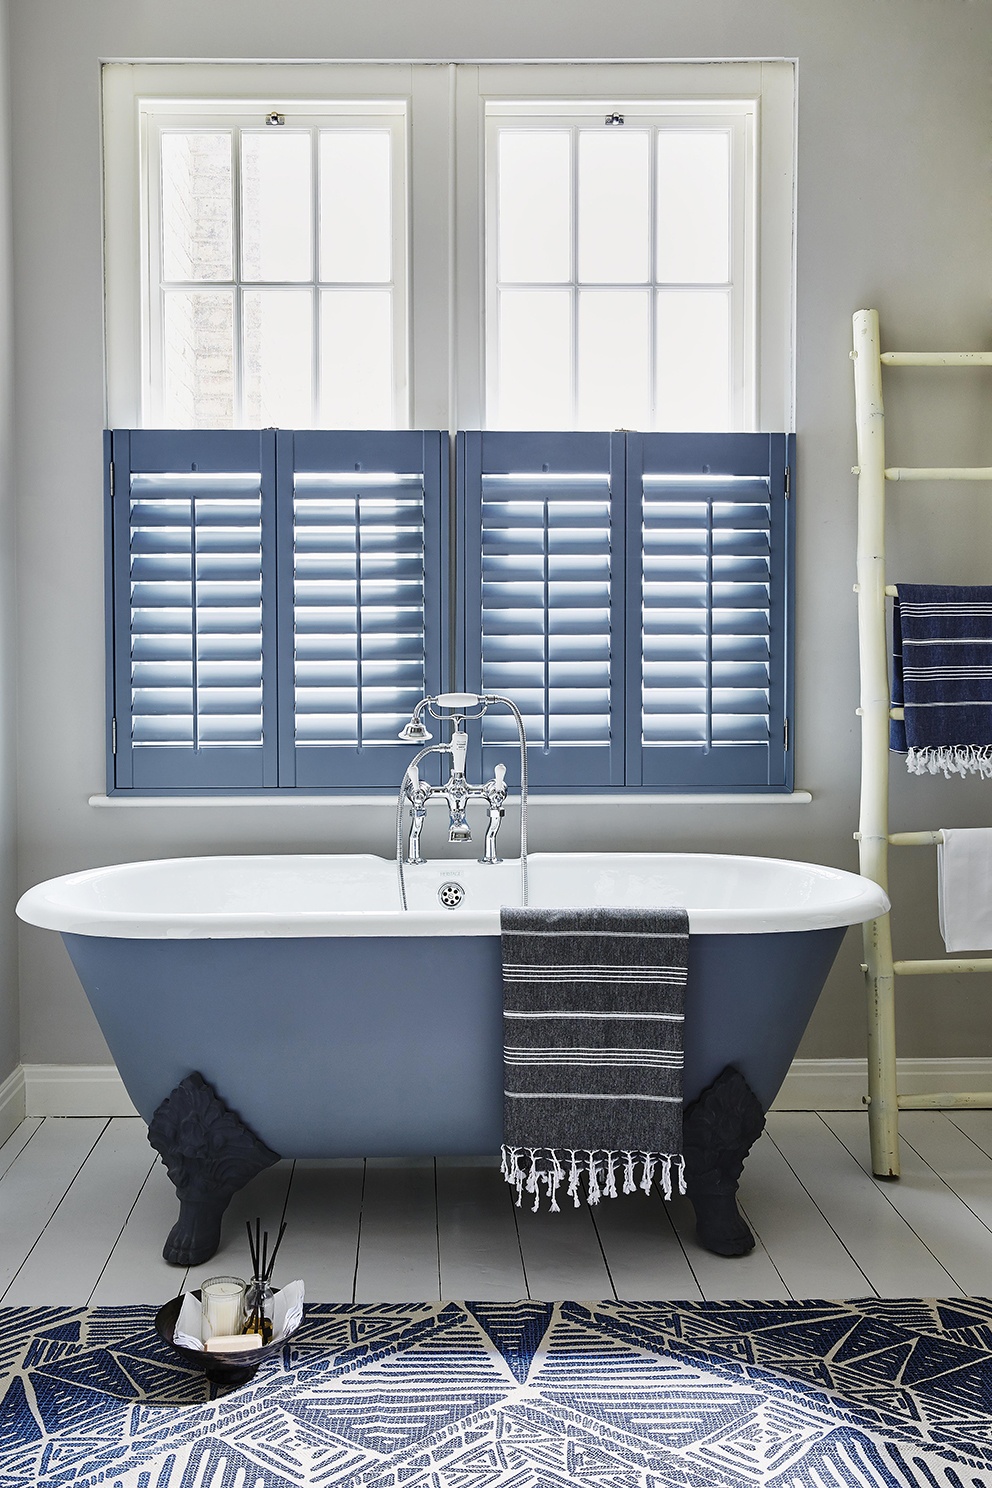 Shutterly Fabulous - French For Pineapple Blog - cafe style blue shutters in bathroom with blue freestanding bath and blue and white rug